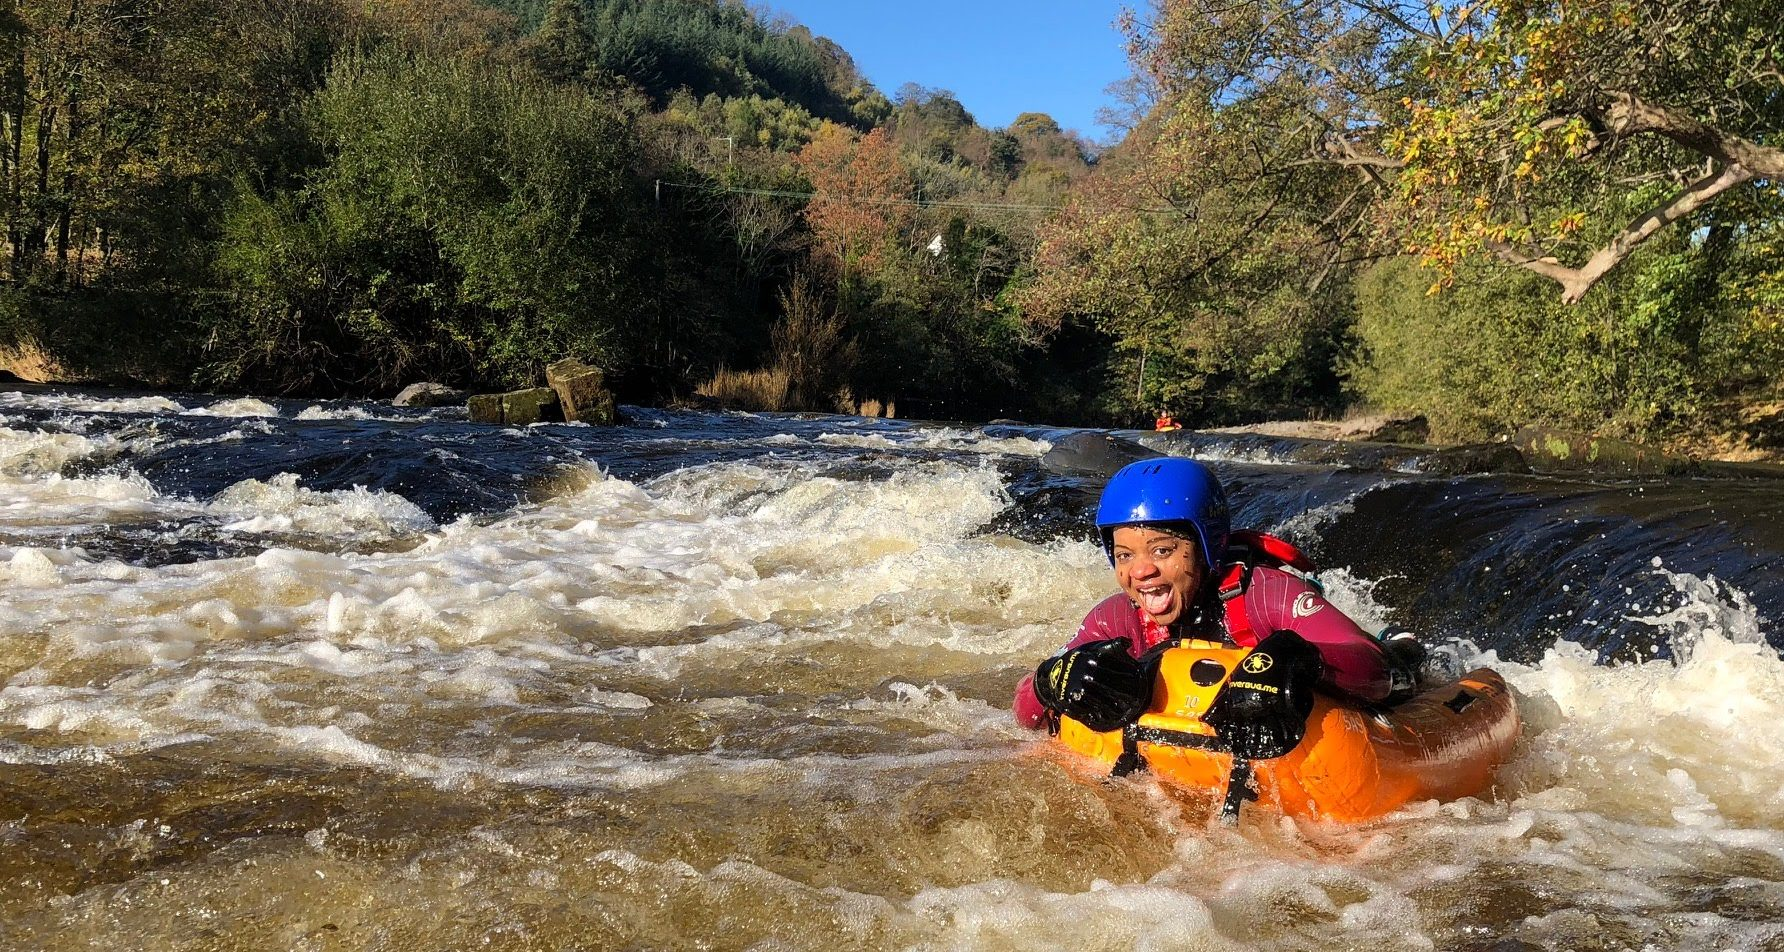 Riverbugging on a 36 hour micro adventure holiday in North Wales